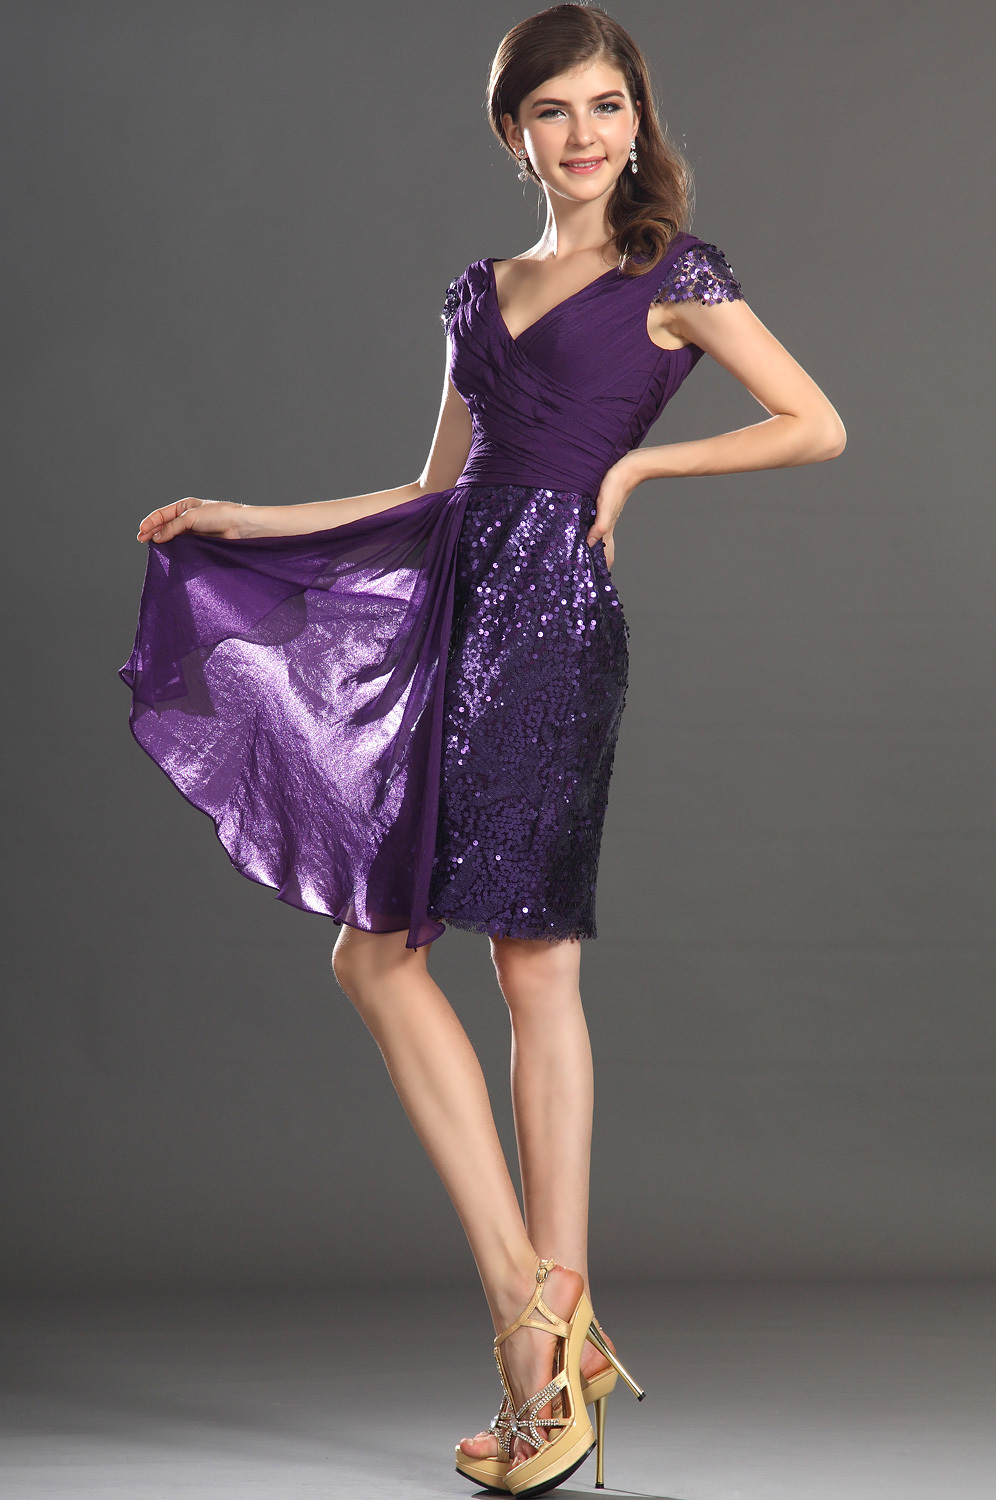 Metallic purple dress and oscar fashion review dresses ask metallic purple dress and oscar fashion review ombrellifo Images